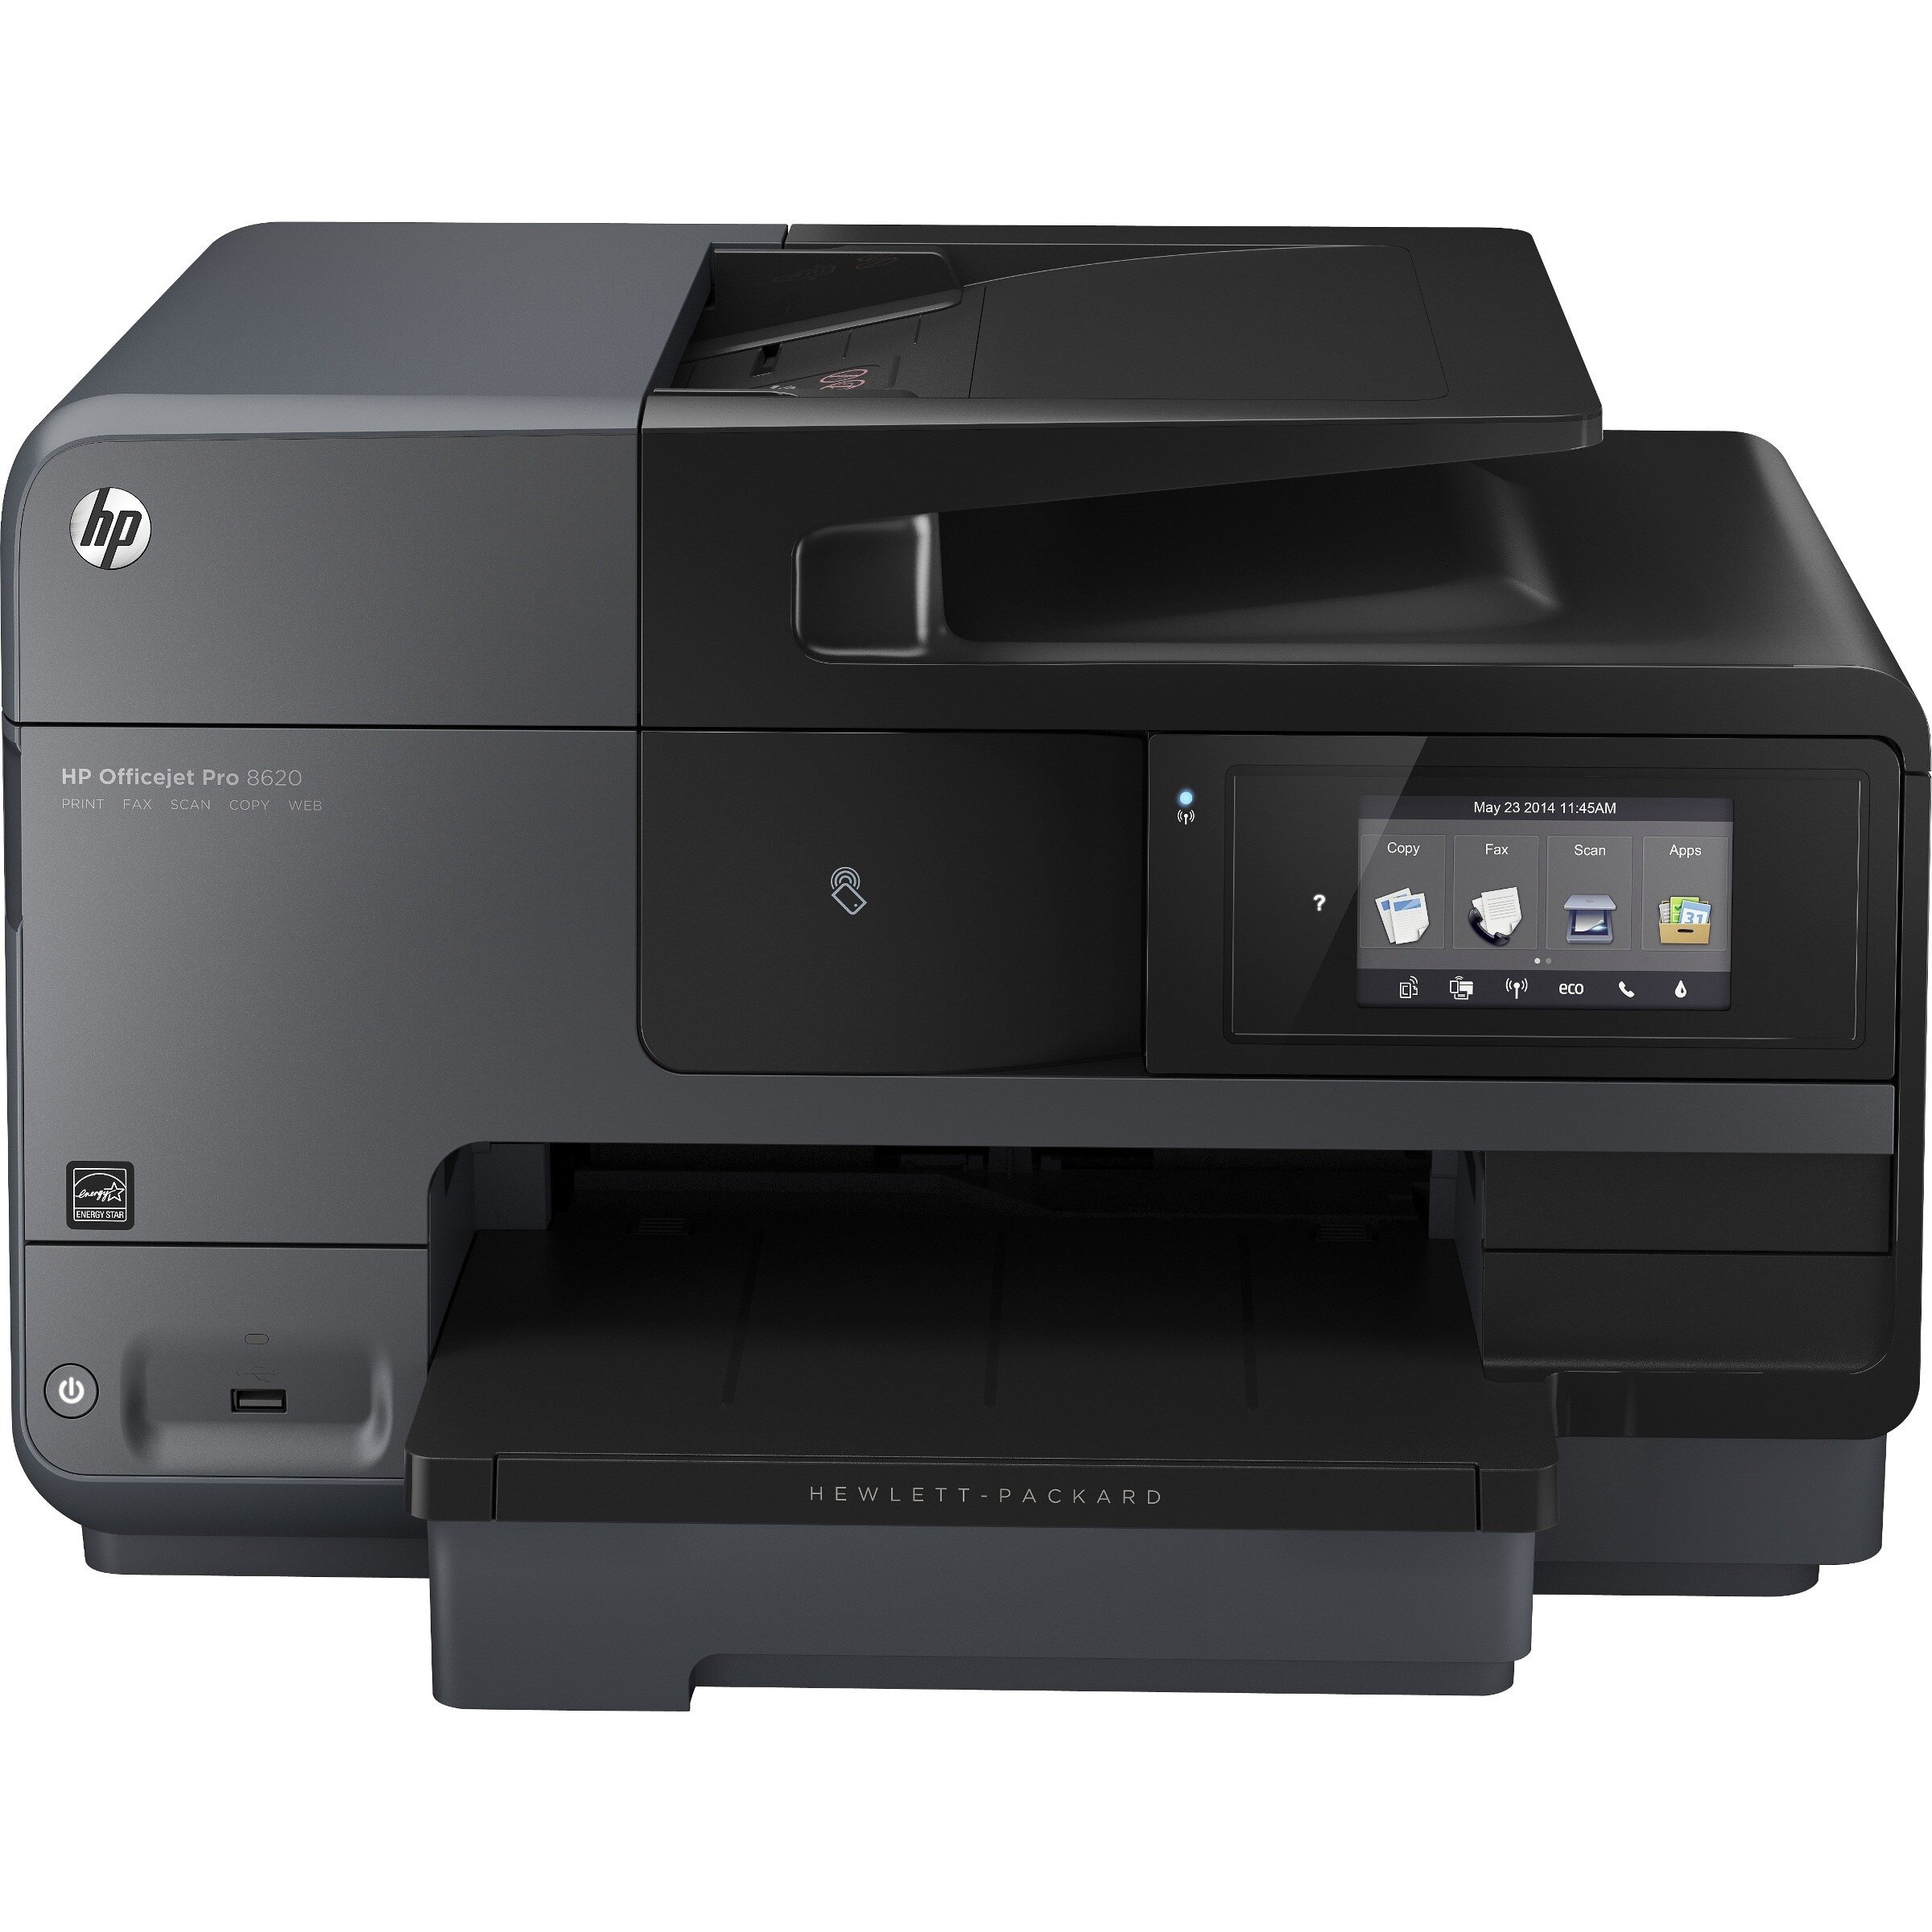 Refurbished HP Officejet Pro 8620 e-All-in-One Color Ink-jet - Fax / copier / printer / scanner 0